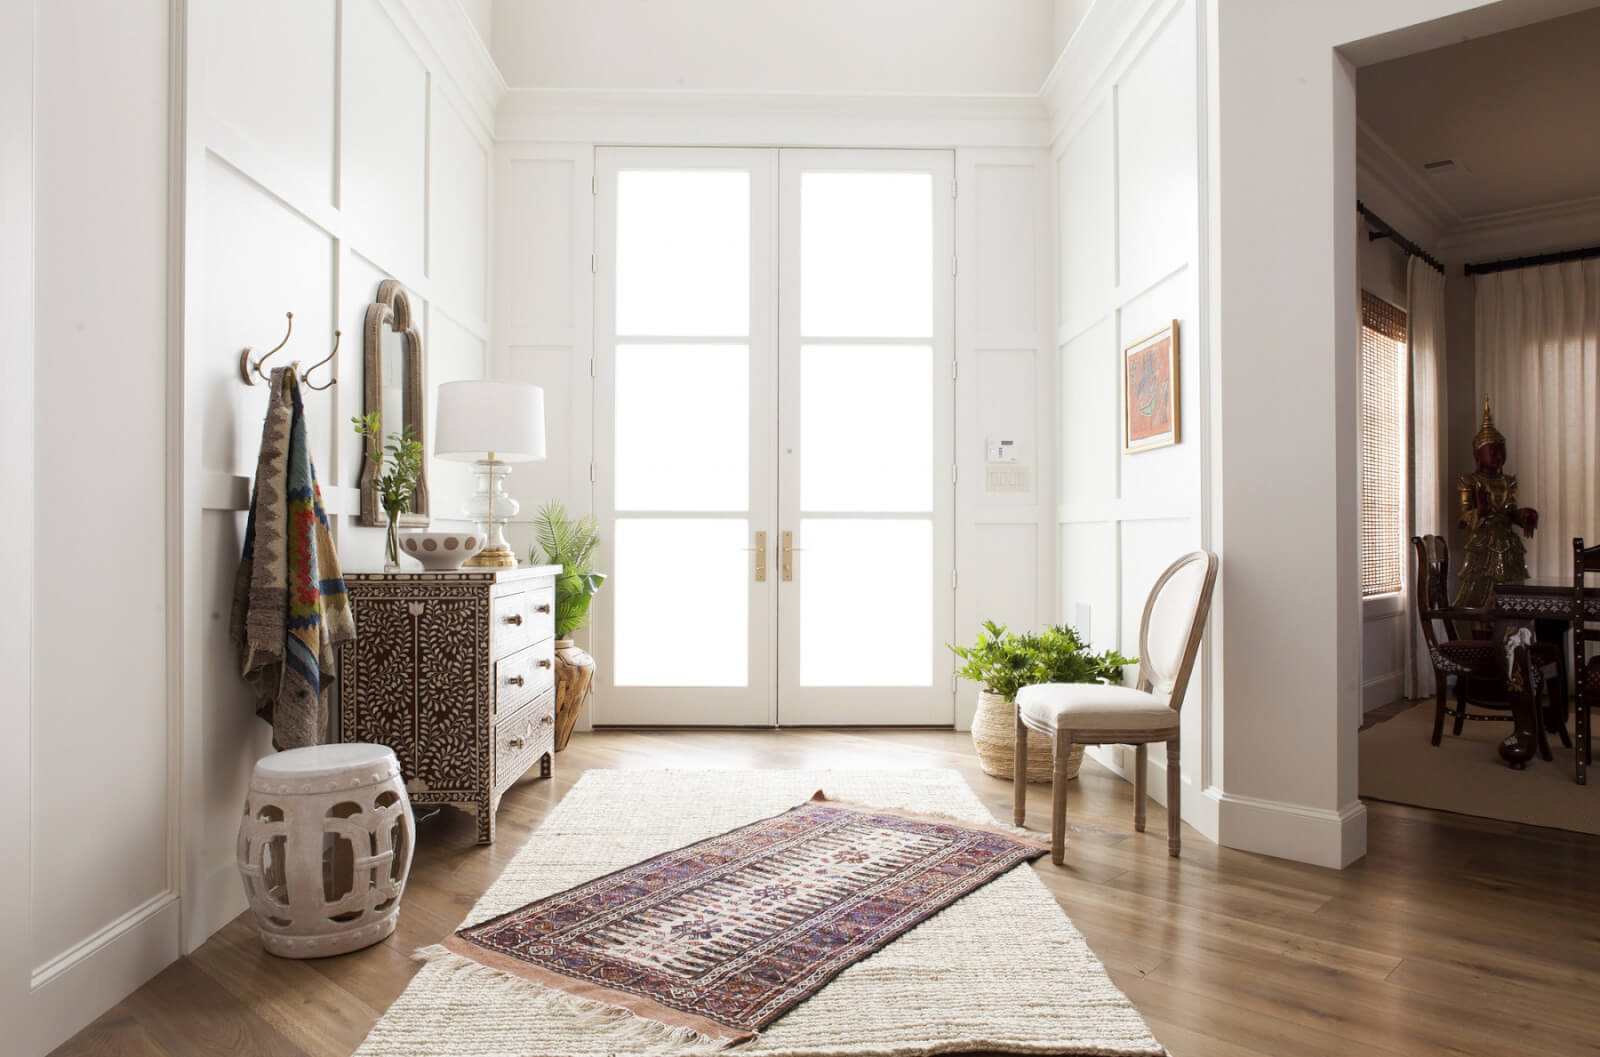 Entryway in Dallas home designed by Megan Fornes of ML Interiors Group